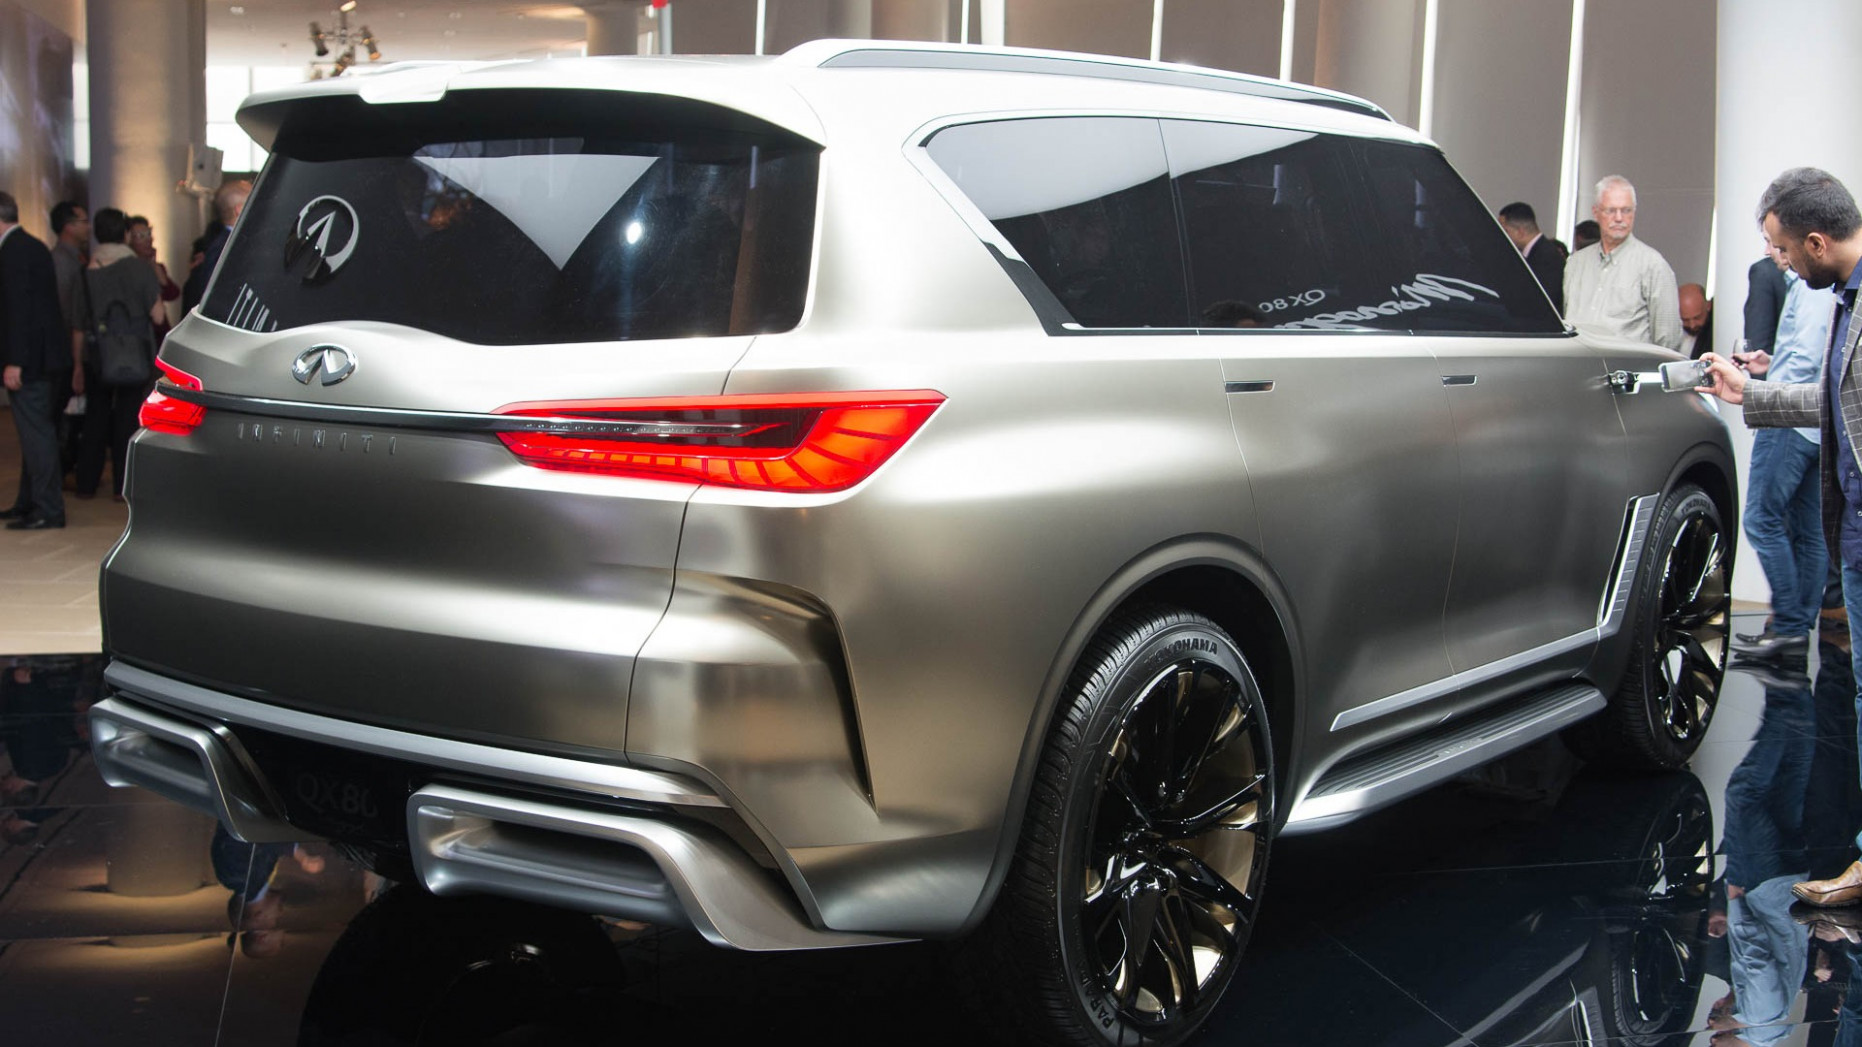 Redesign and Concept 2022 Infiniti QX80